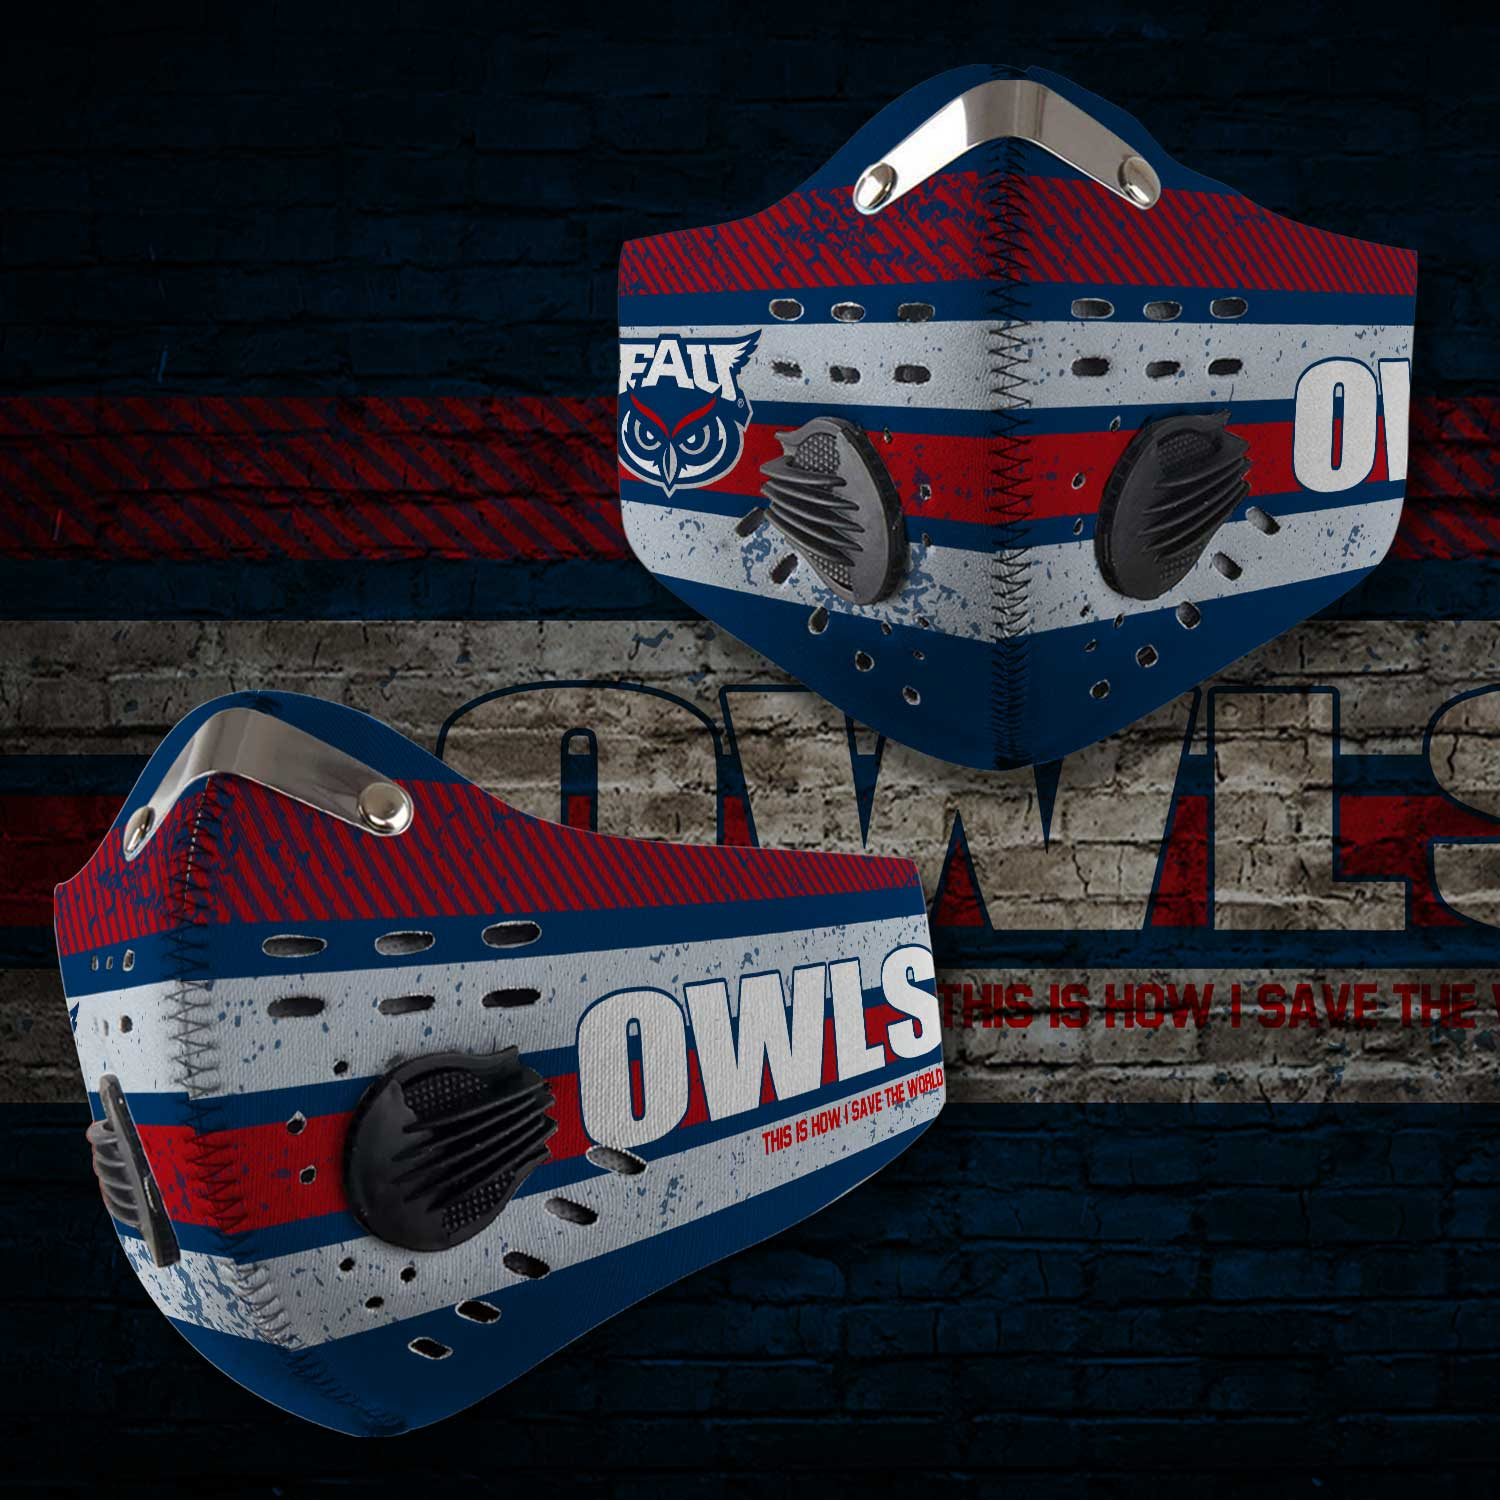 Florida atlantic owls this is how i save the world face mask 1